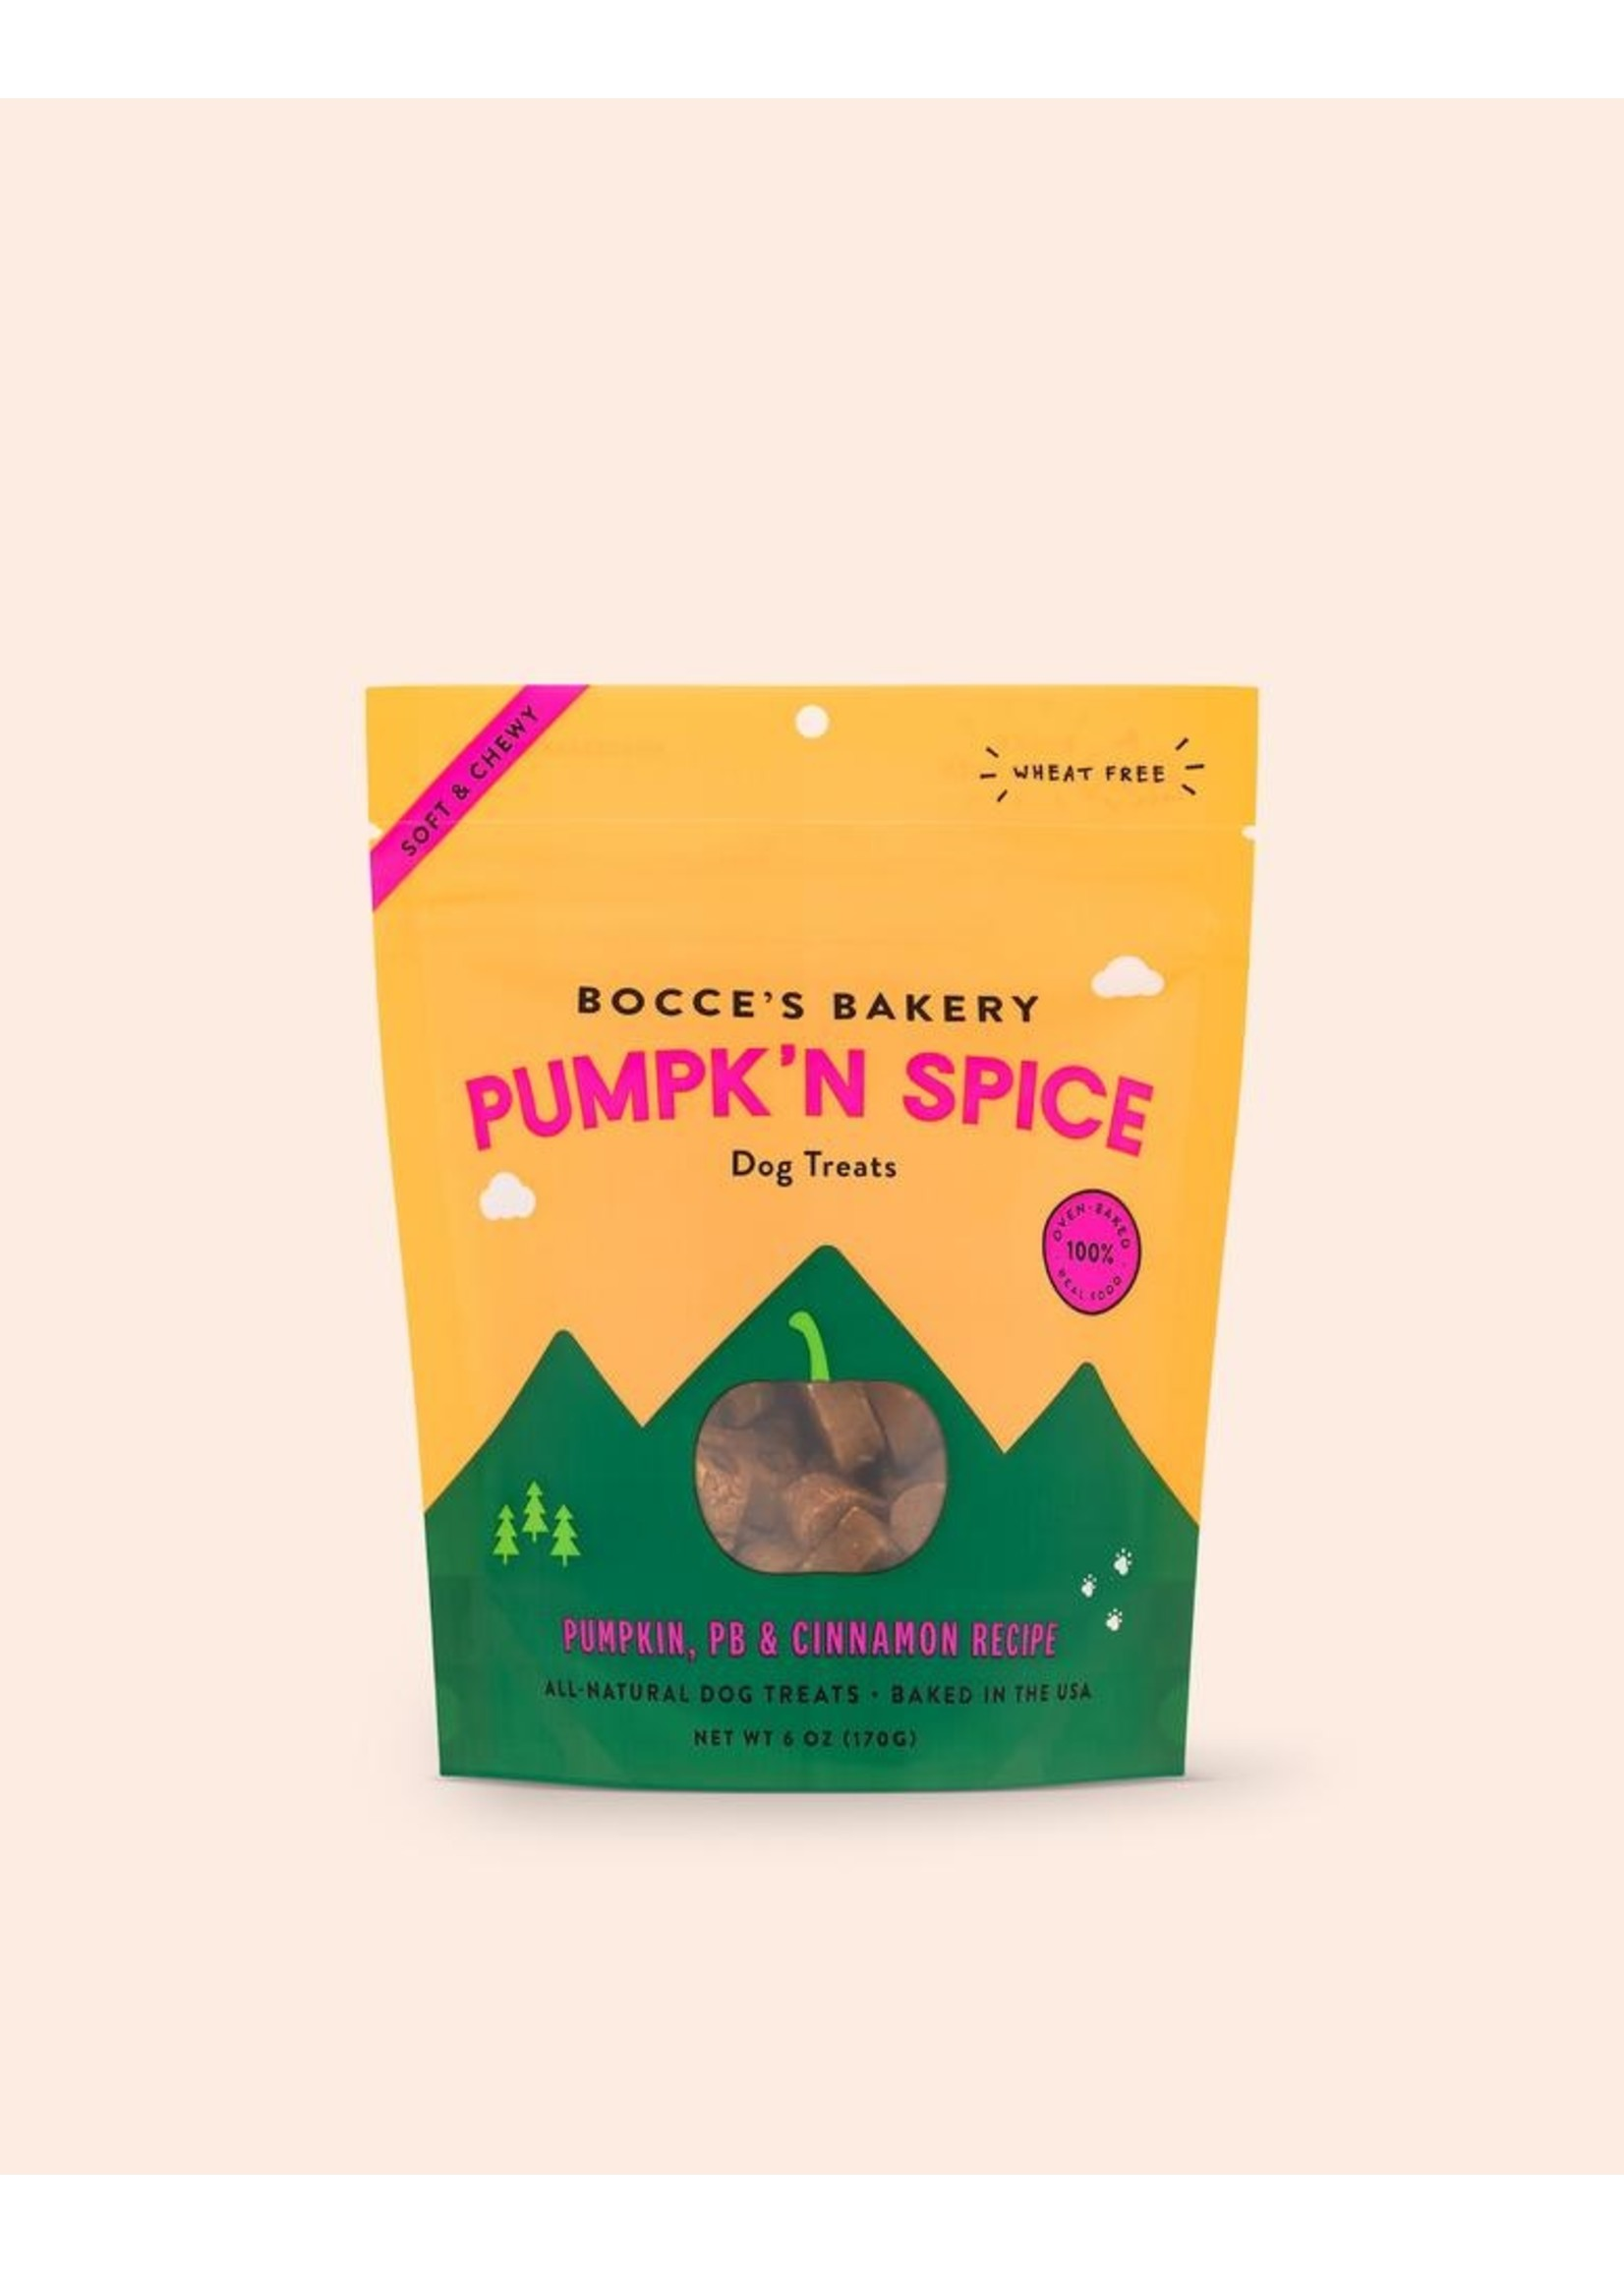 Bocce's Bakery Soft & Chewy Pumpkin Spice